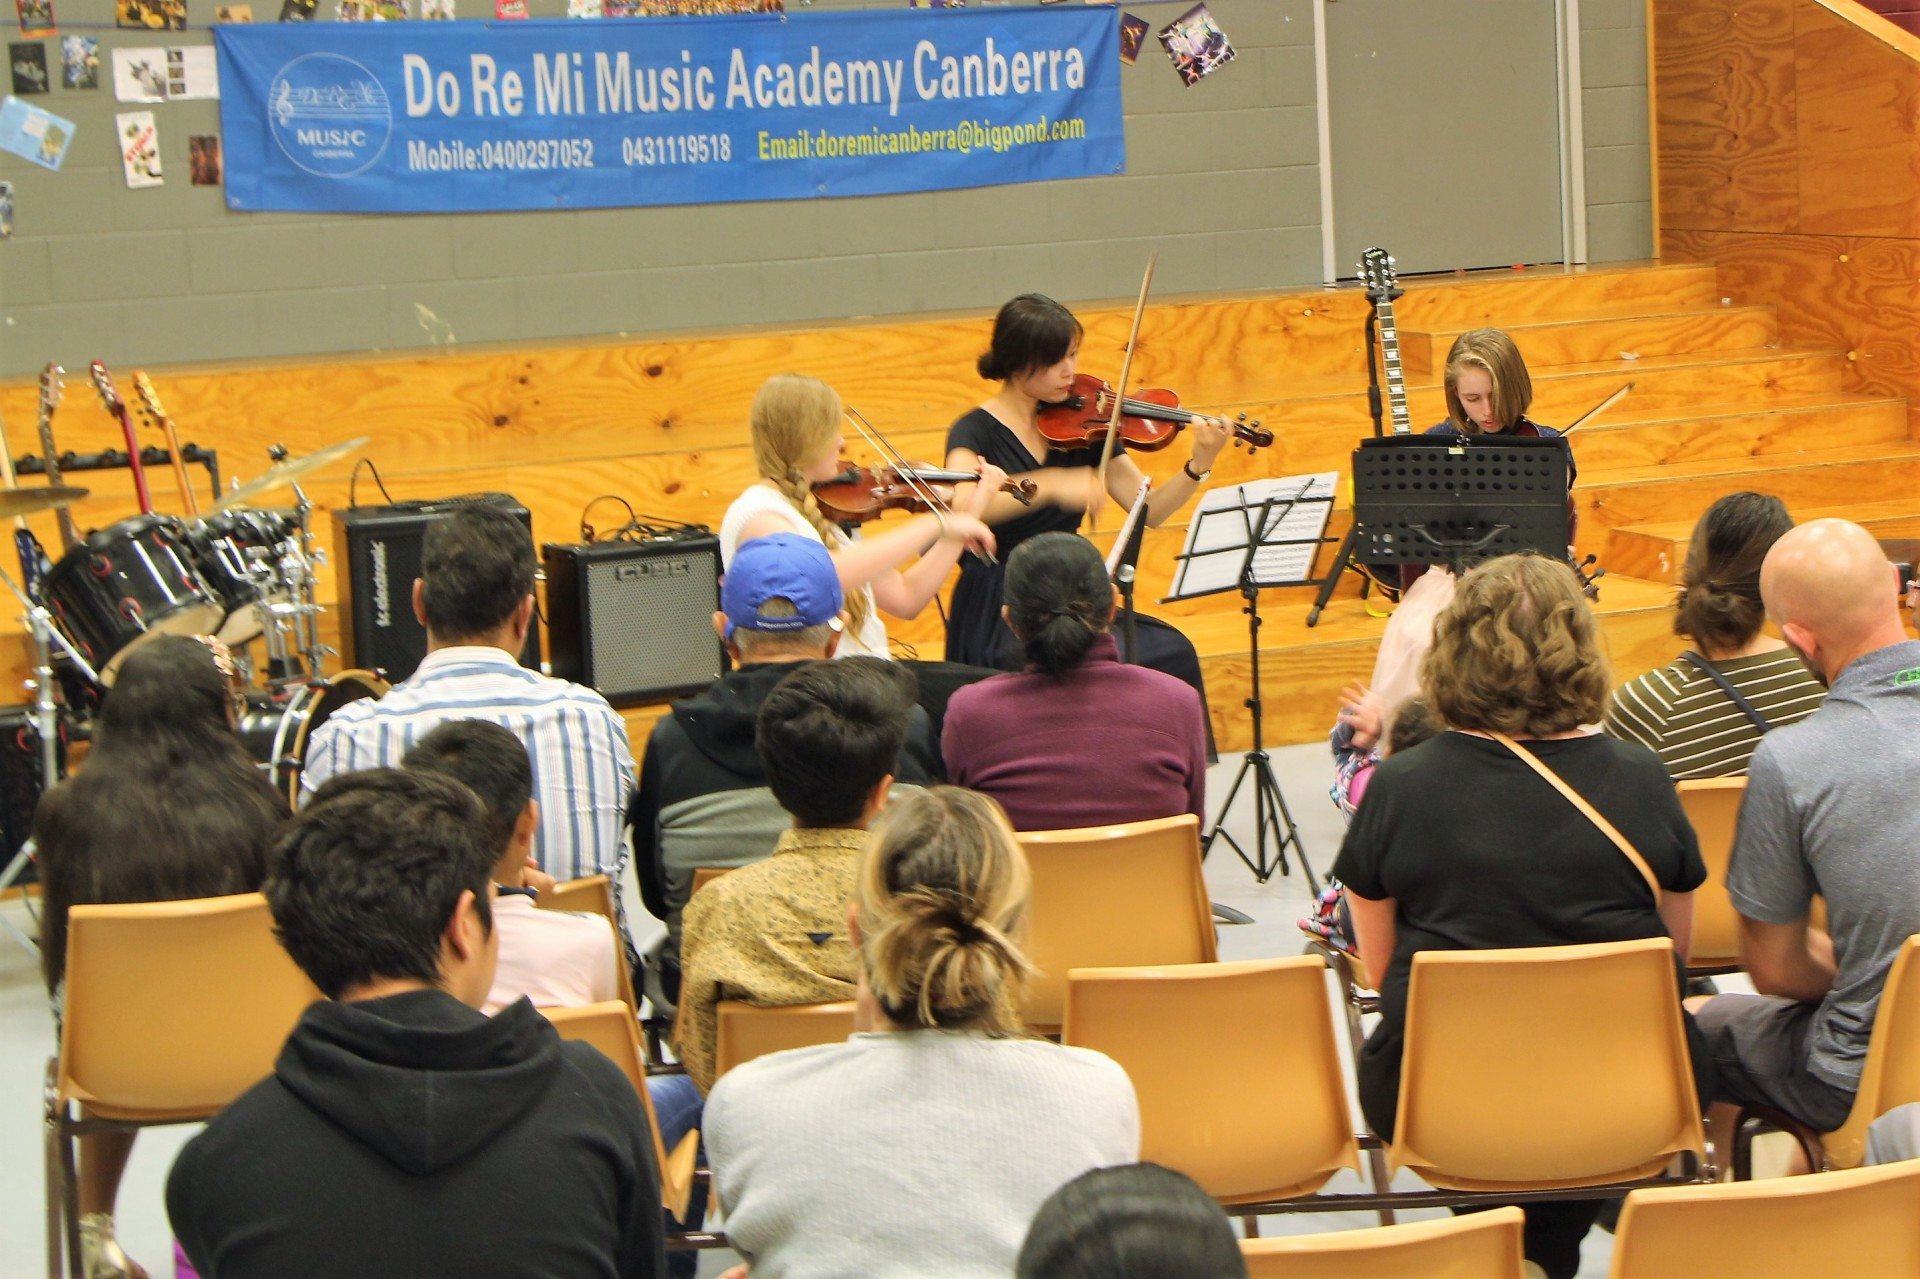 Do Re Mi Canberra Music Academy in 2017